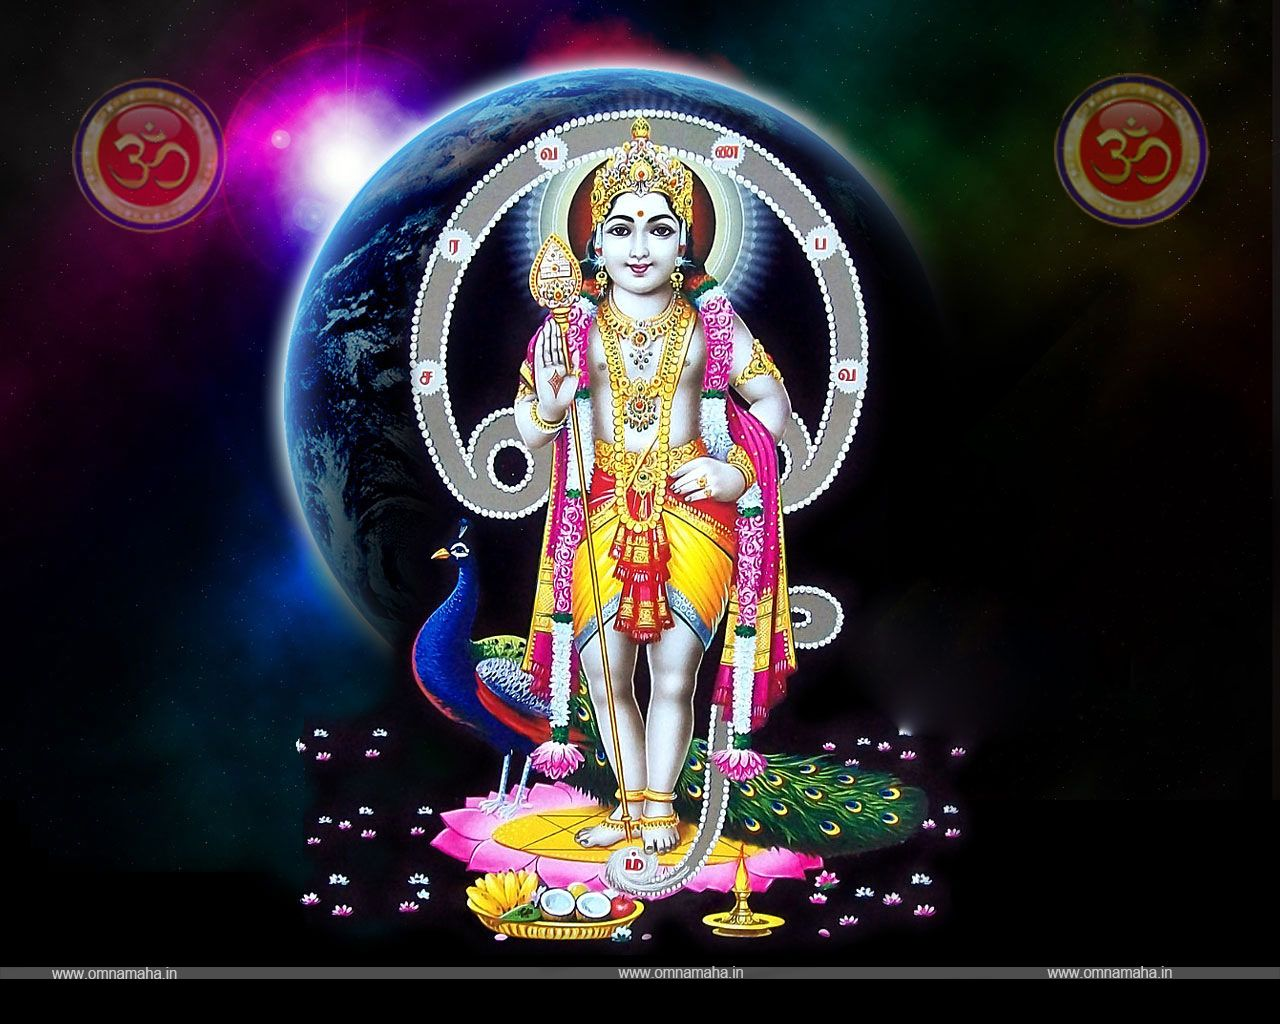 Omnamaha Is A Complete Devotional Website For Devotional Videos Stotras Live Tv Song Background Hd Wallpaper Lord Murugan Wallpapers Wallpaper Free Download